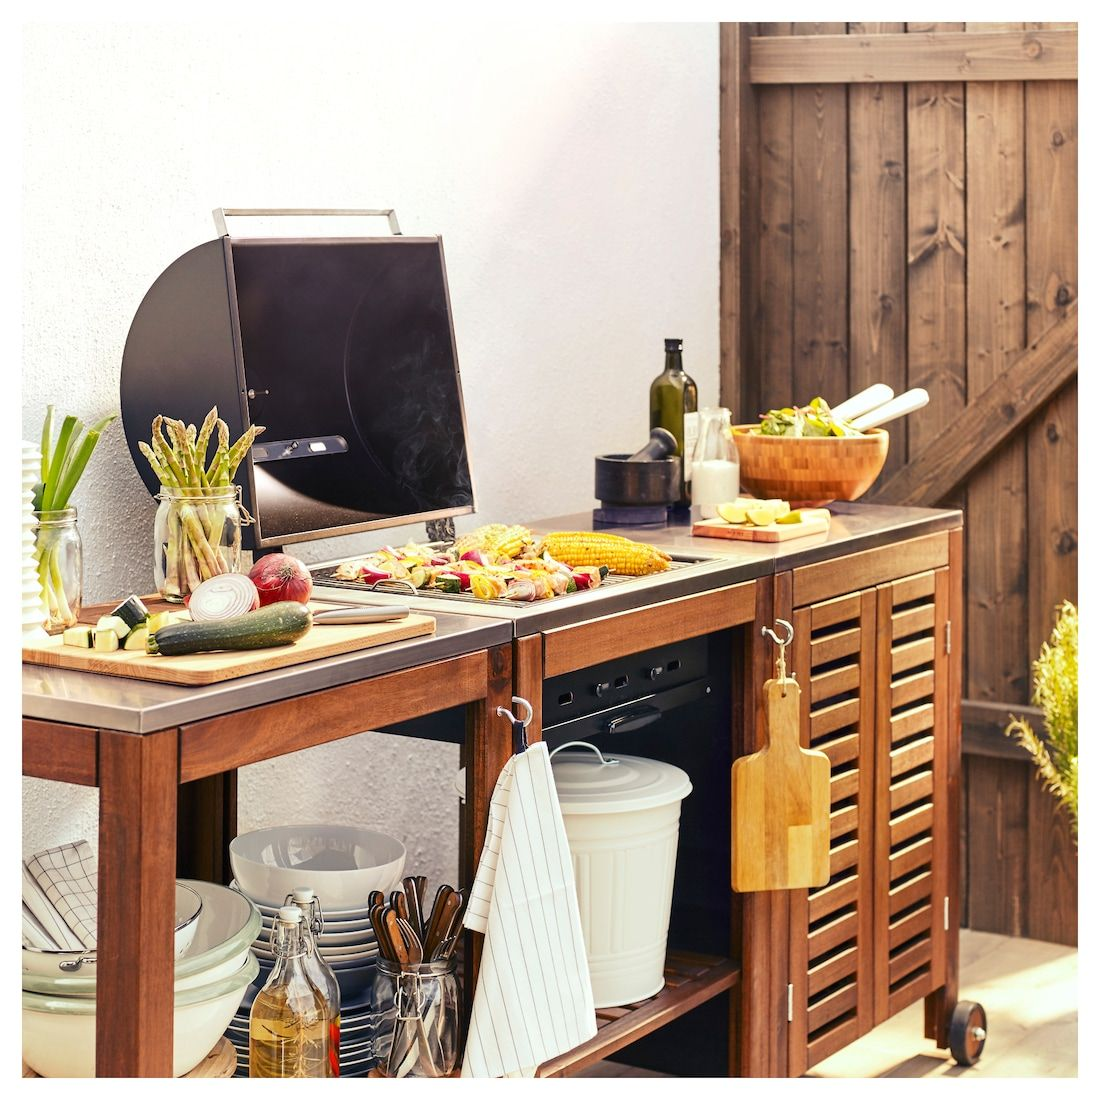 Applaro Klasen Charcoal Grill With Cart Cabinet Brown Stained Stainless Steel Color Ikea 480 V Outdoor Kitchen Design Outdoor Kitchen Kitchen Design